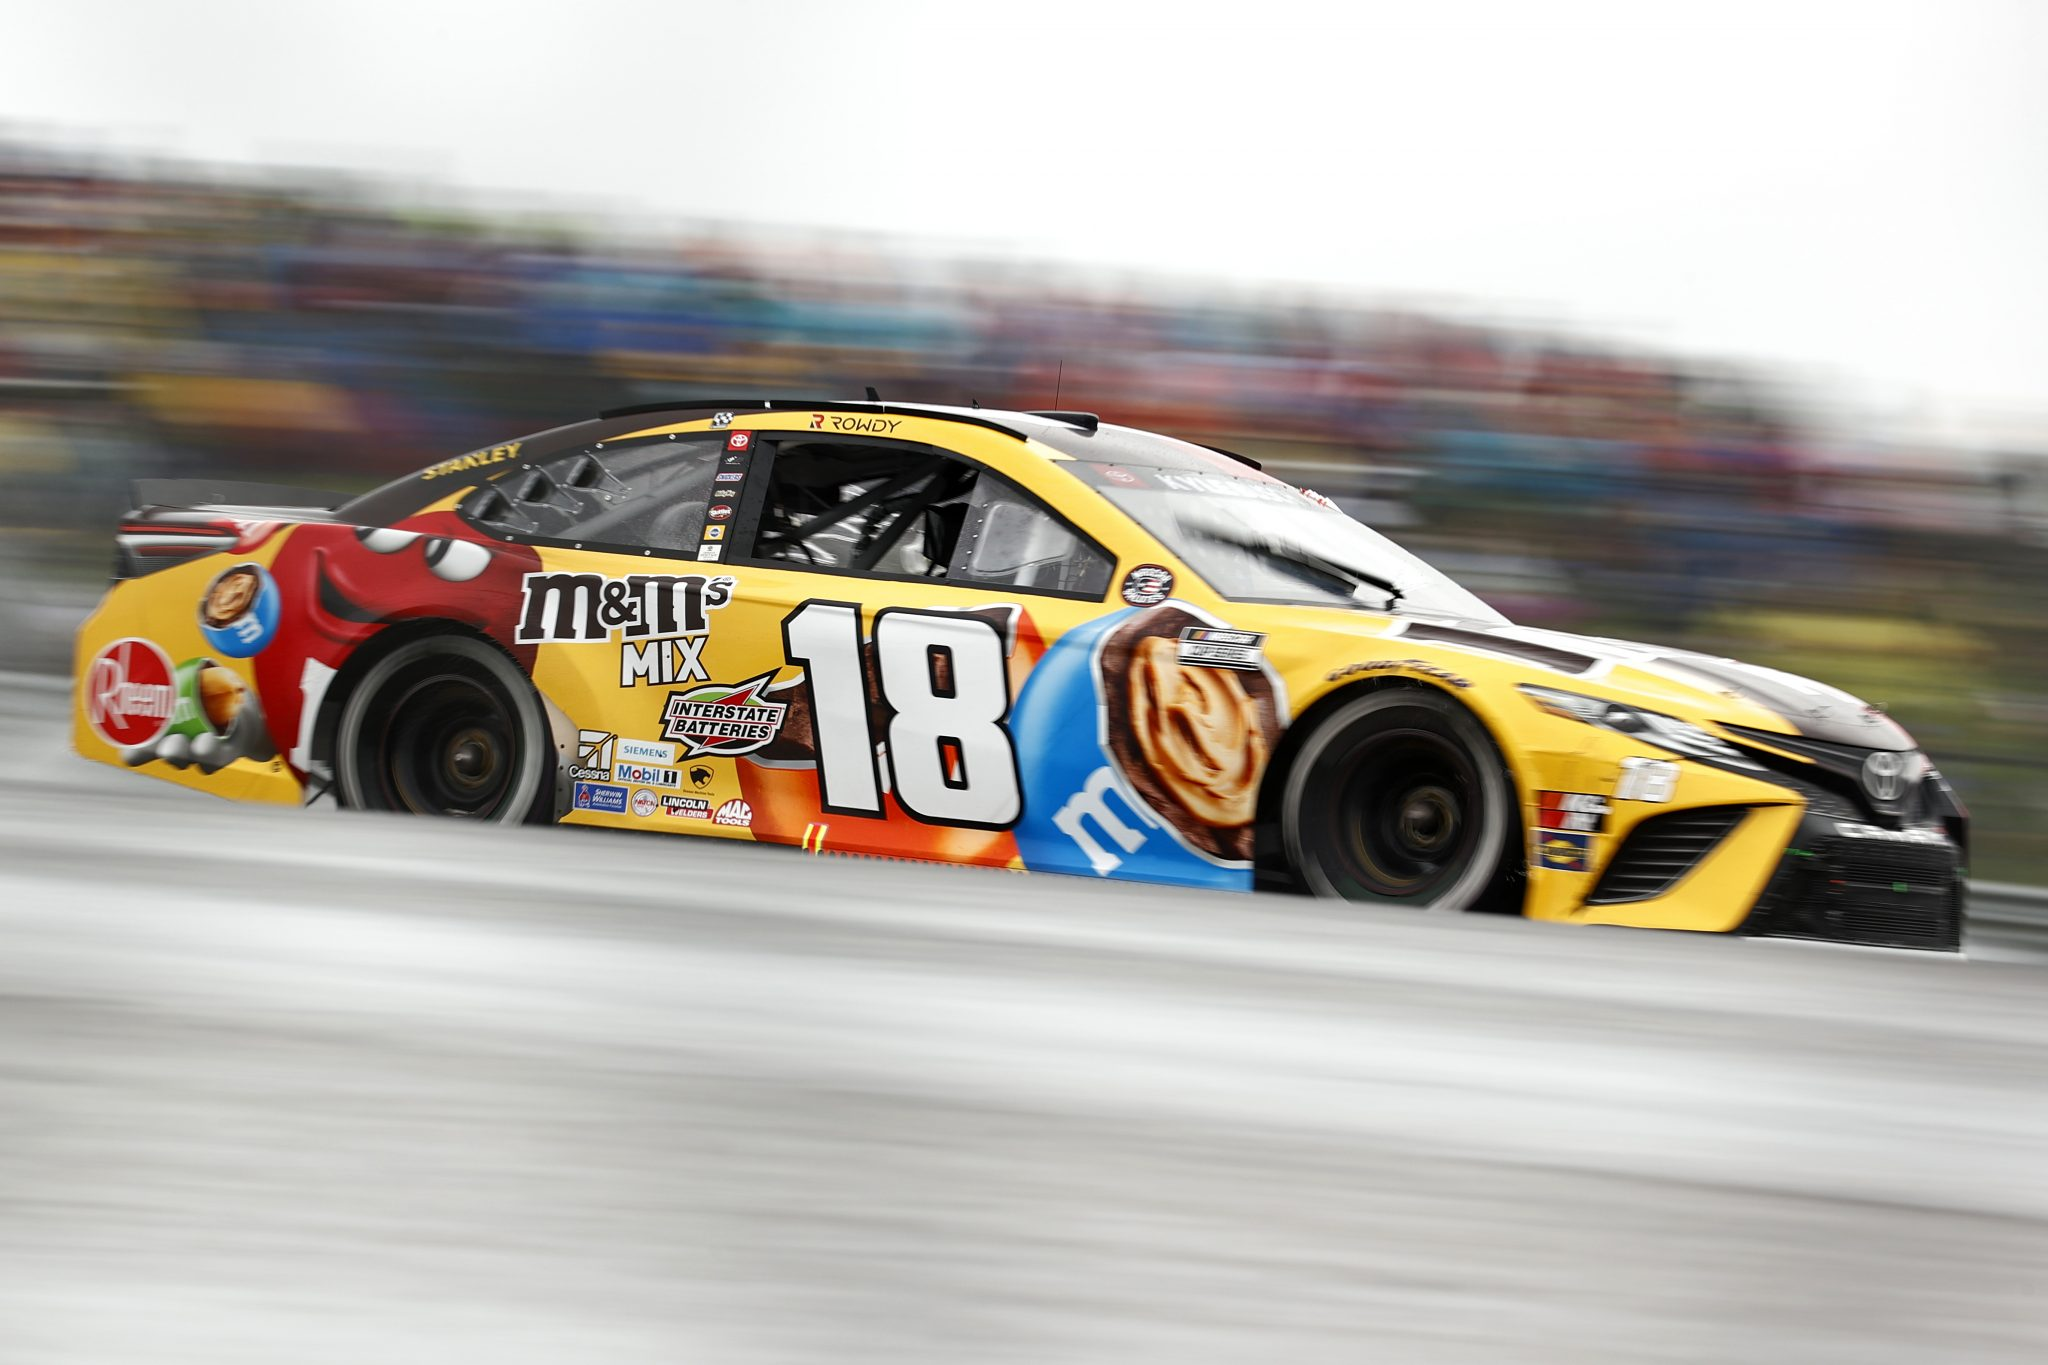 AUSTIN, TEXAS - MAY 23: Kyle Busch, driver of the #18 M&M's Mix Toyota, drives during the NASCAR Cup Series EchoPark Texas Grand Prix at Circuit of The Americas on May 23, 2021 in Austin, Texas. (Photo by Jared C. Tilton/Getty Images) | Getty Images